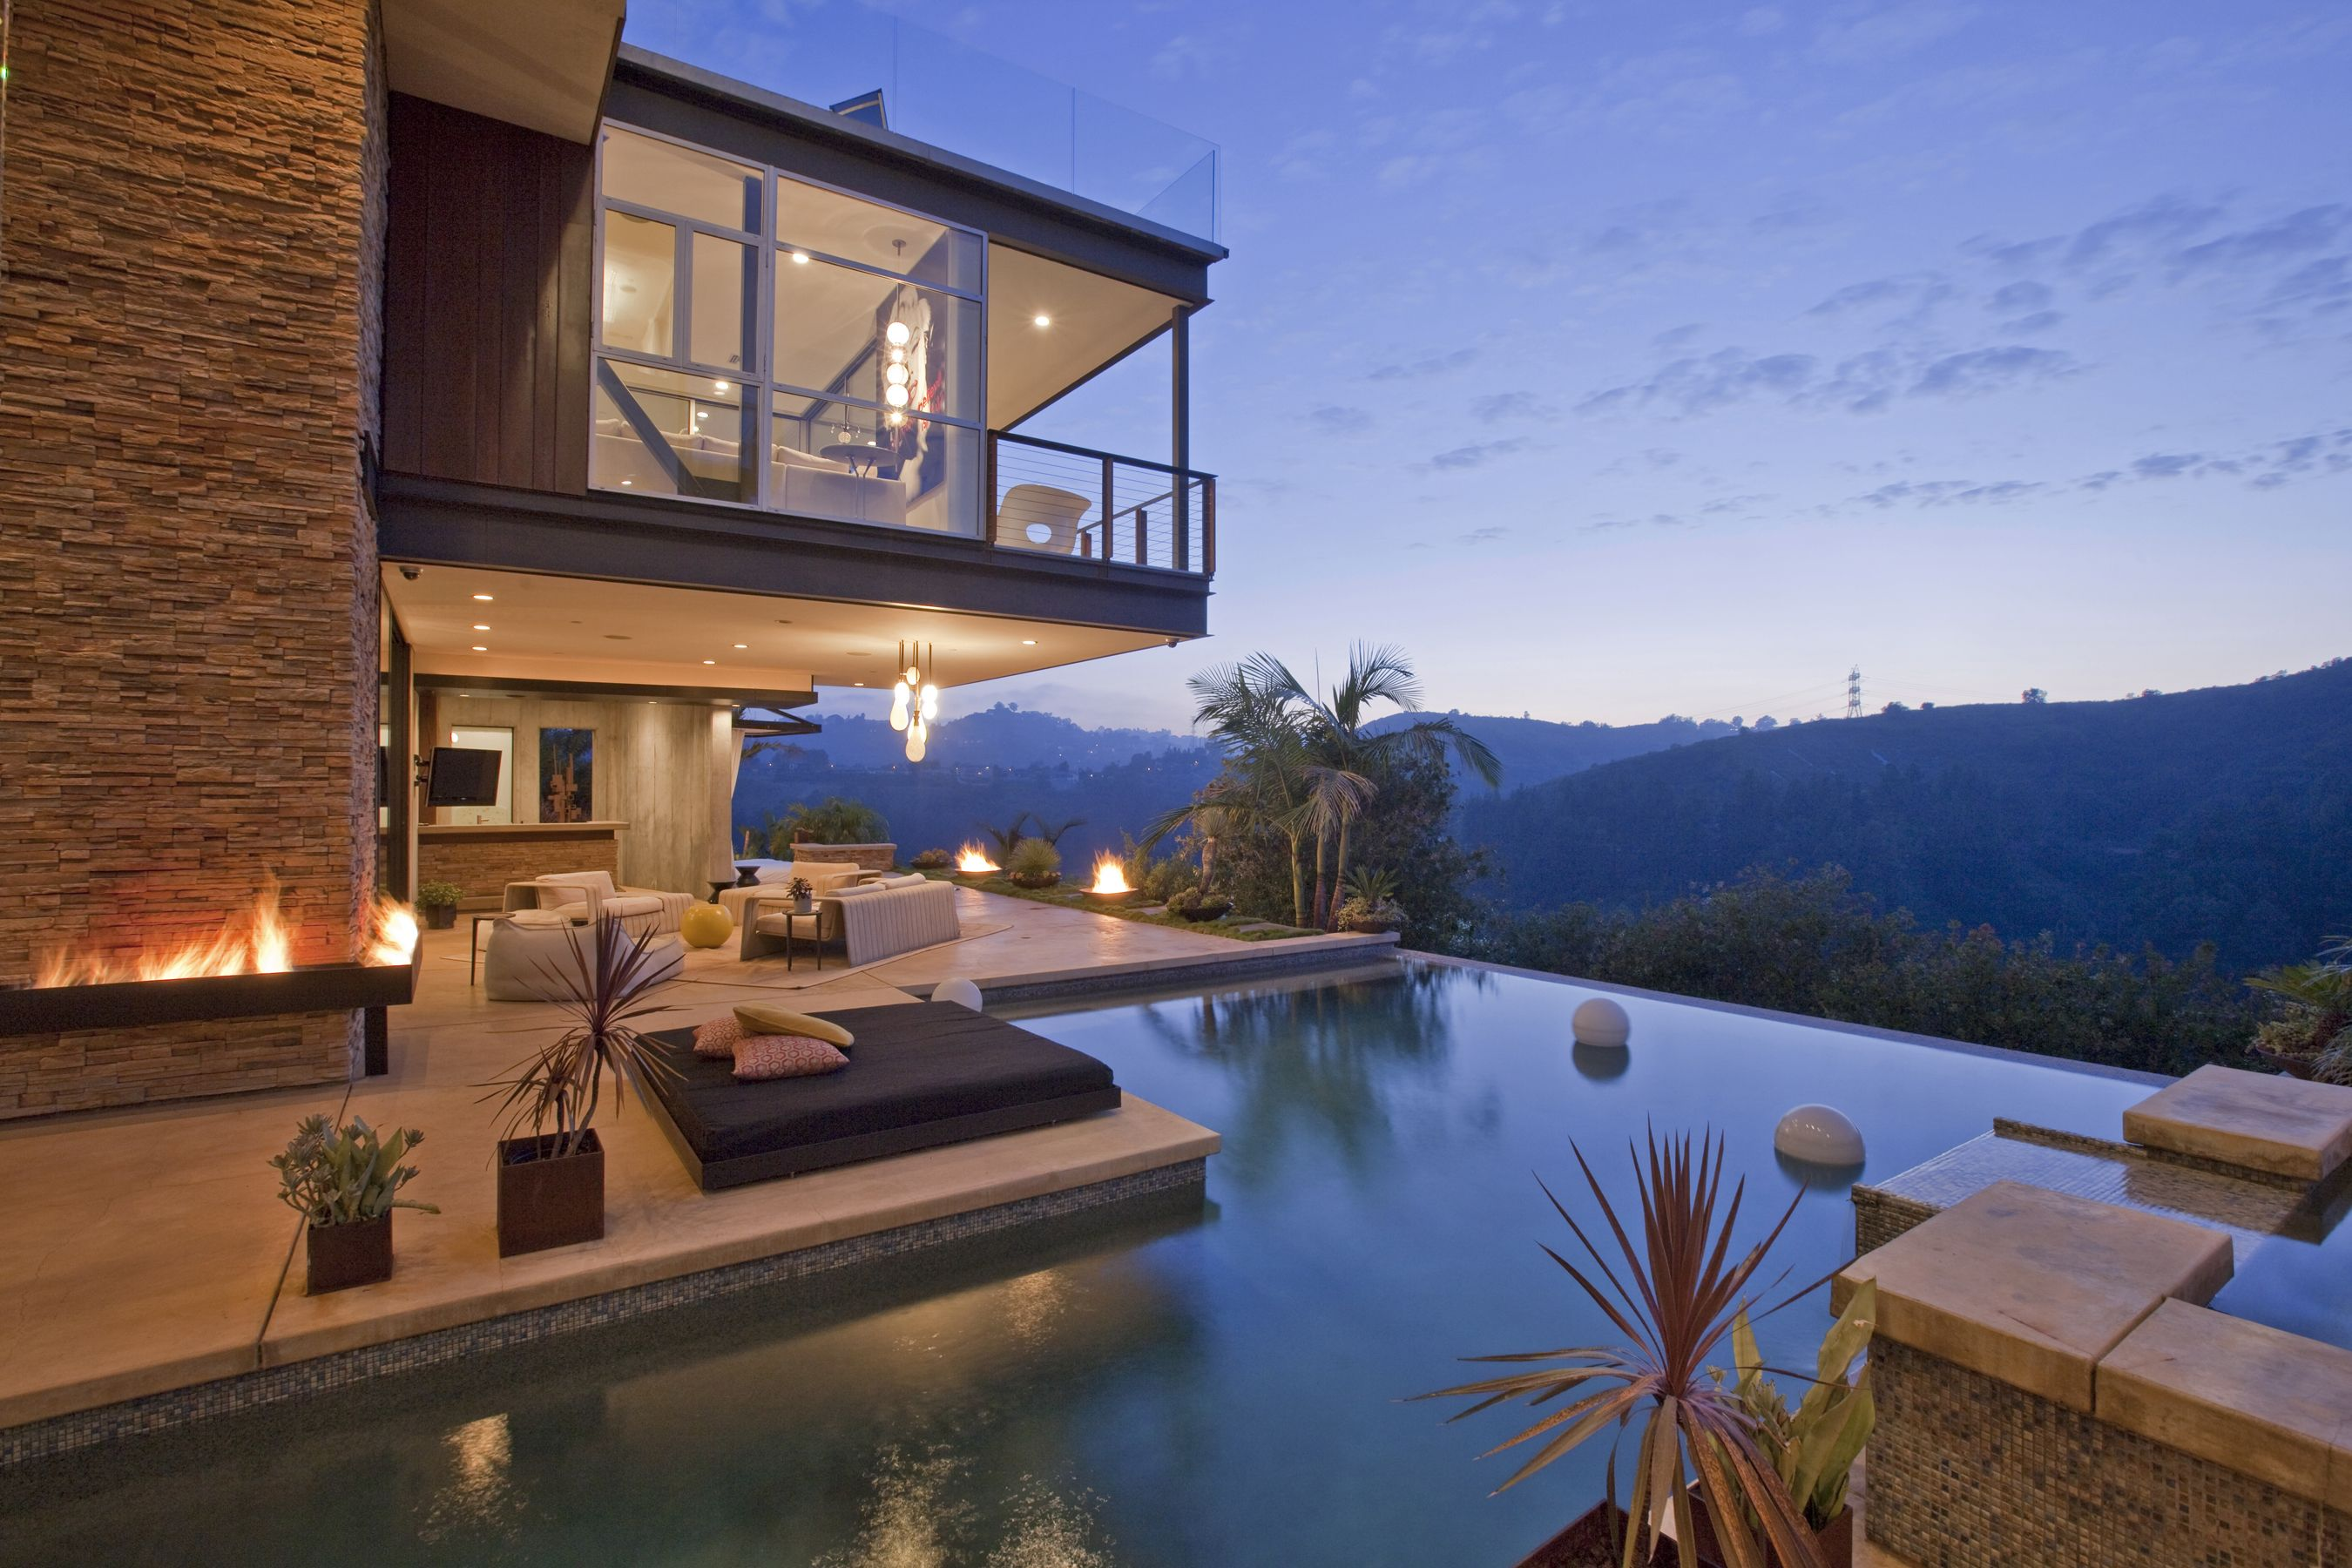 Luxury Homes For Sale Luxury Real Estate Luxury Portfolio Celebrity Houses Hollywood Hills Homes Architecture